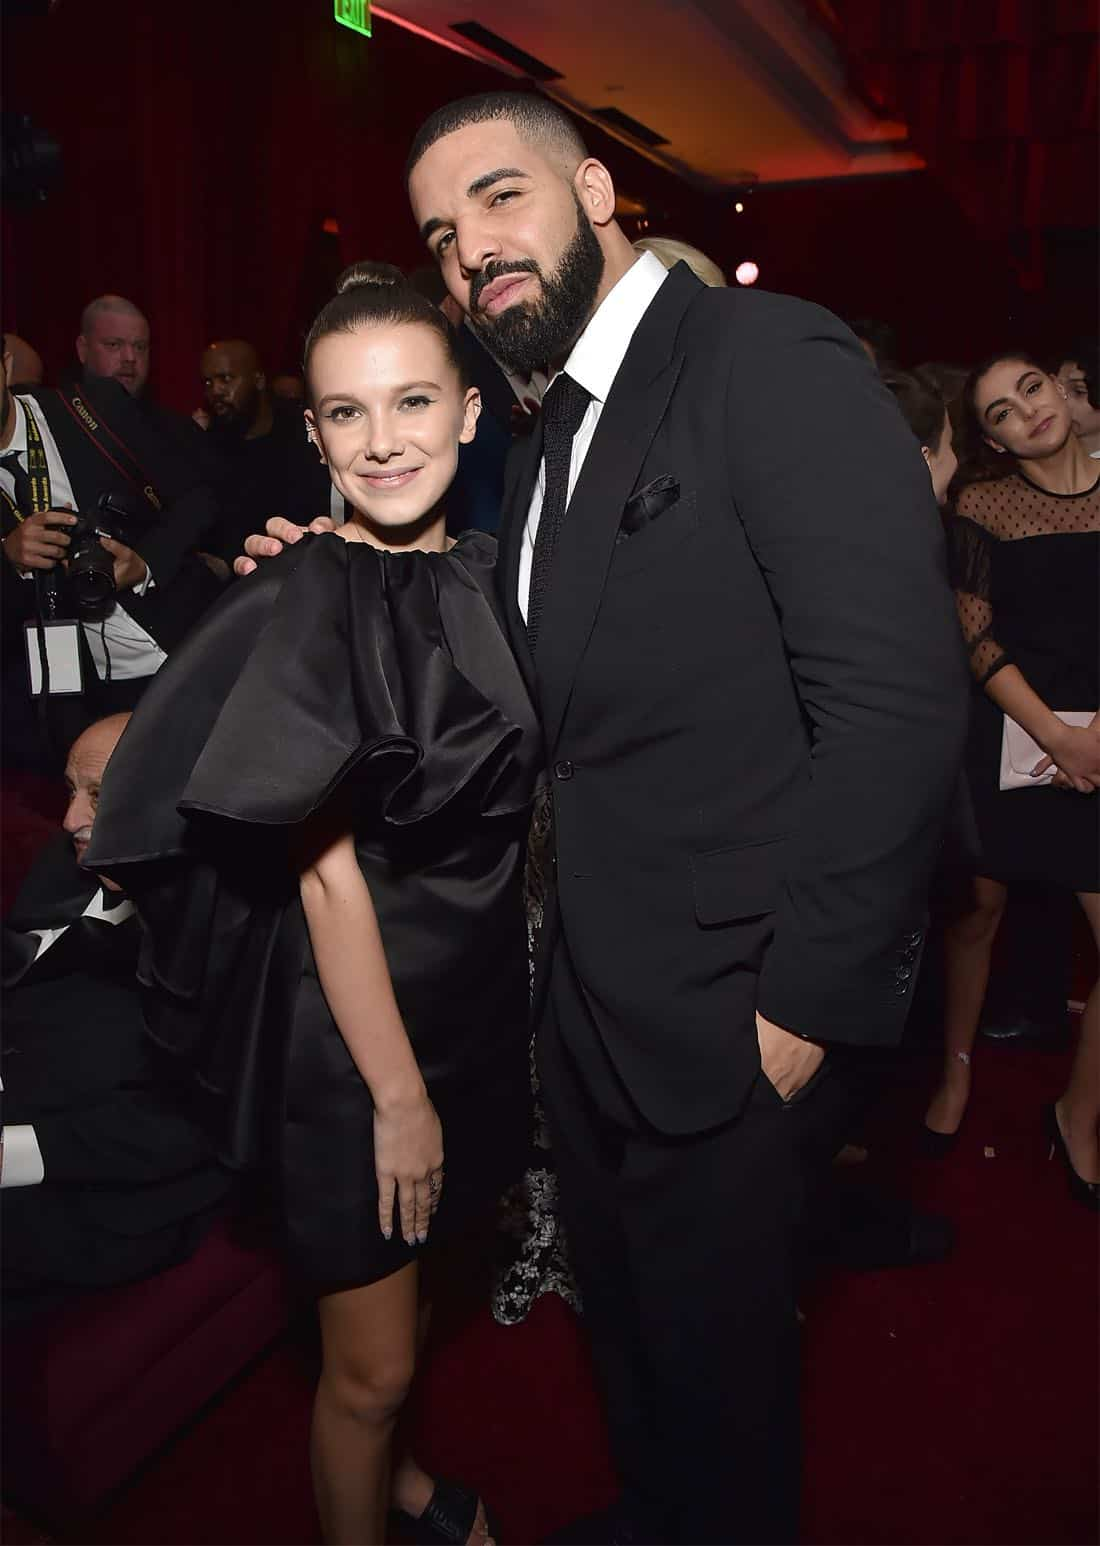 BEVERLY HILLS, CA - JANUARY 07:  Millie Bobby Brown and Drake attend the Netflix Golden Globes after party at Waldorf Astoria Beverly Hills on January 7, 2018 in Beverly Hills, California.  (Photo by Kevin Mazur/Getty Images for Netflix) *** Local Caption *** Millie Bobby Brown; Drake